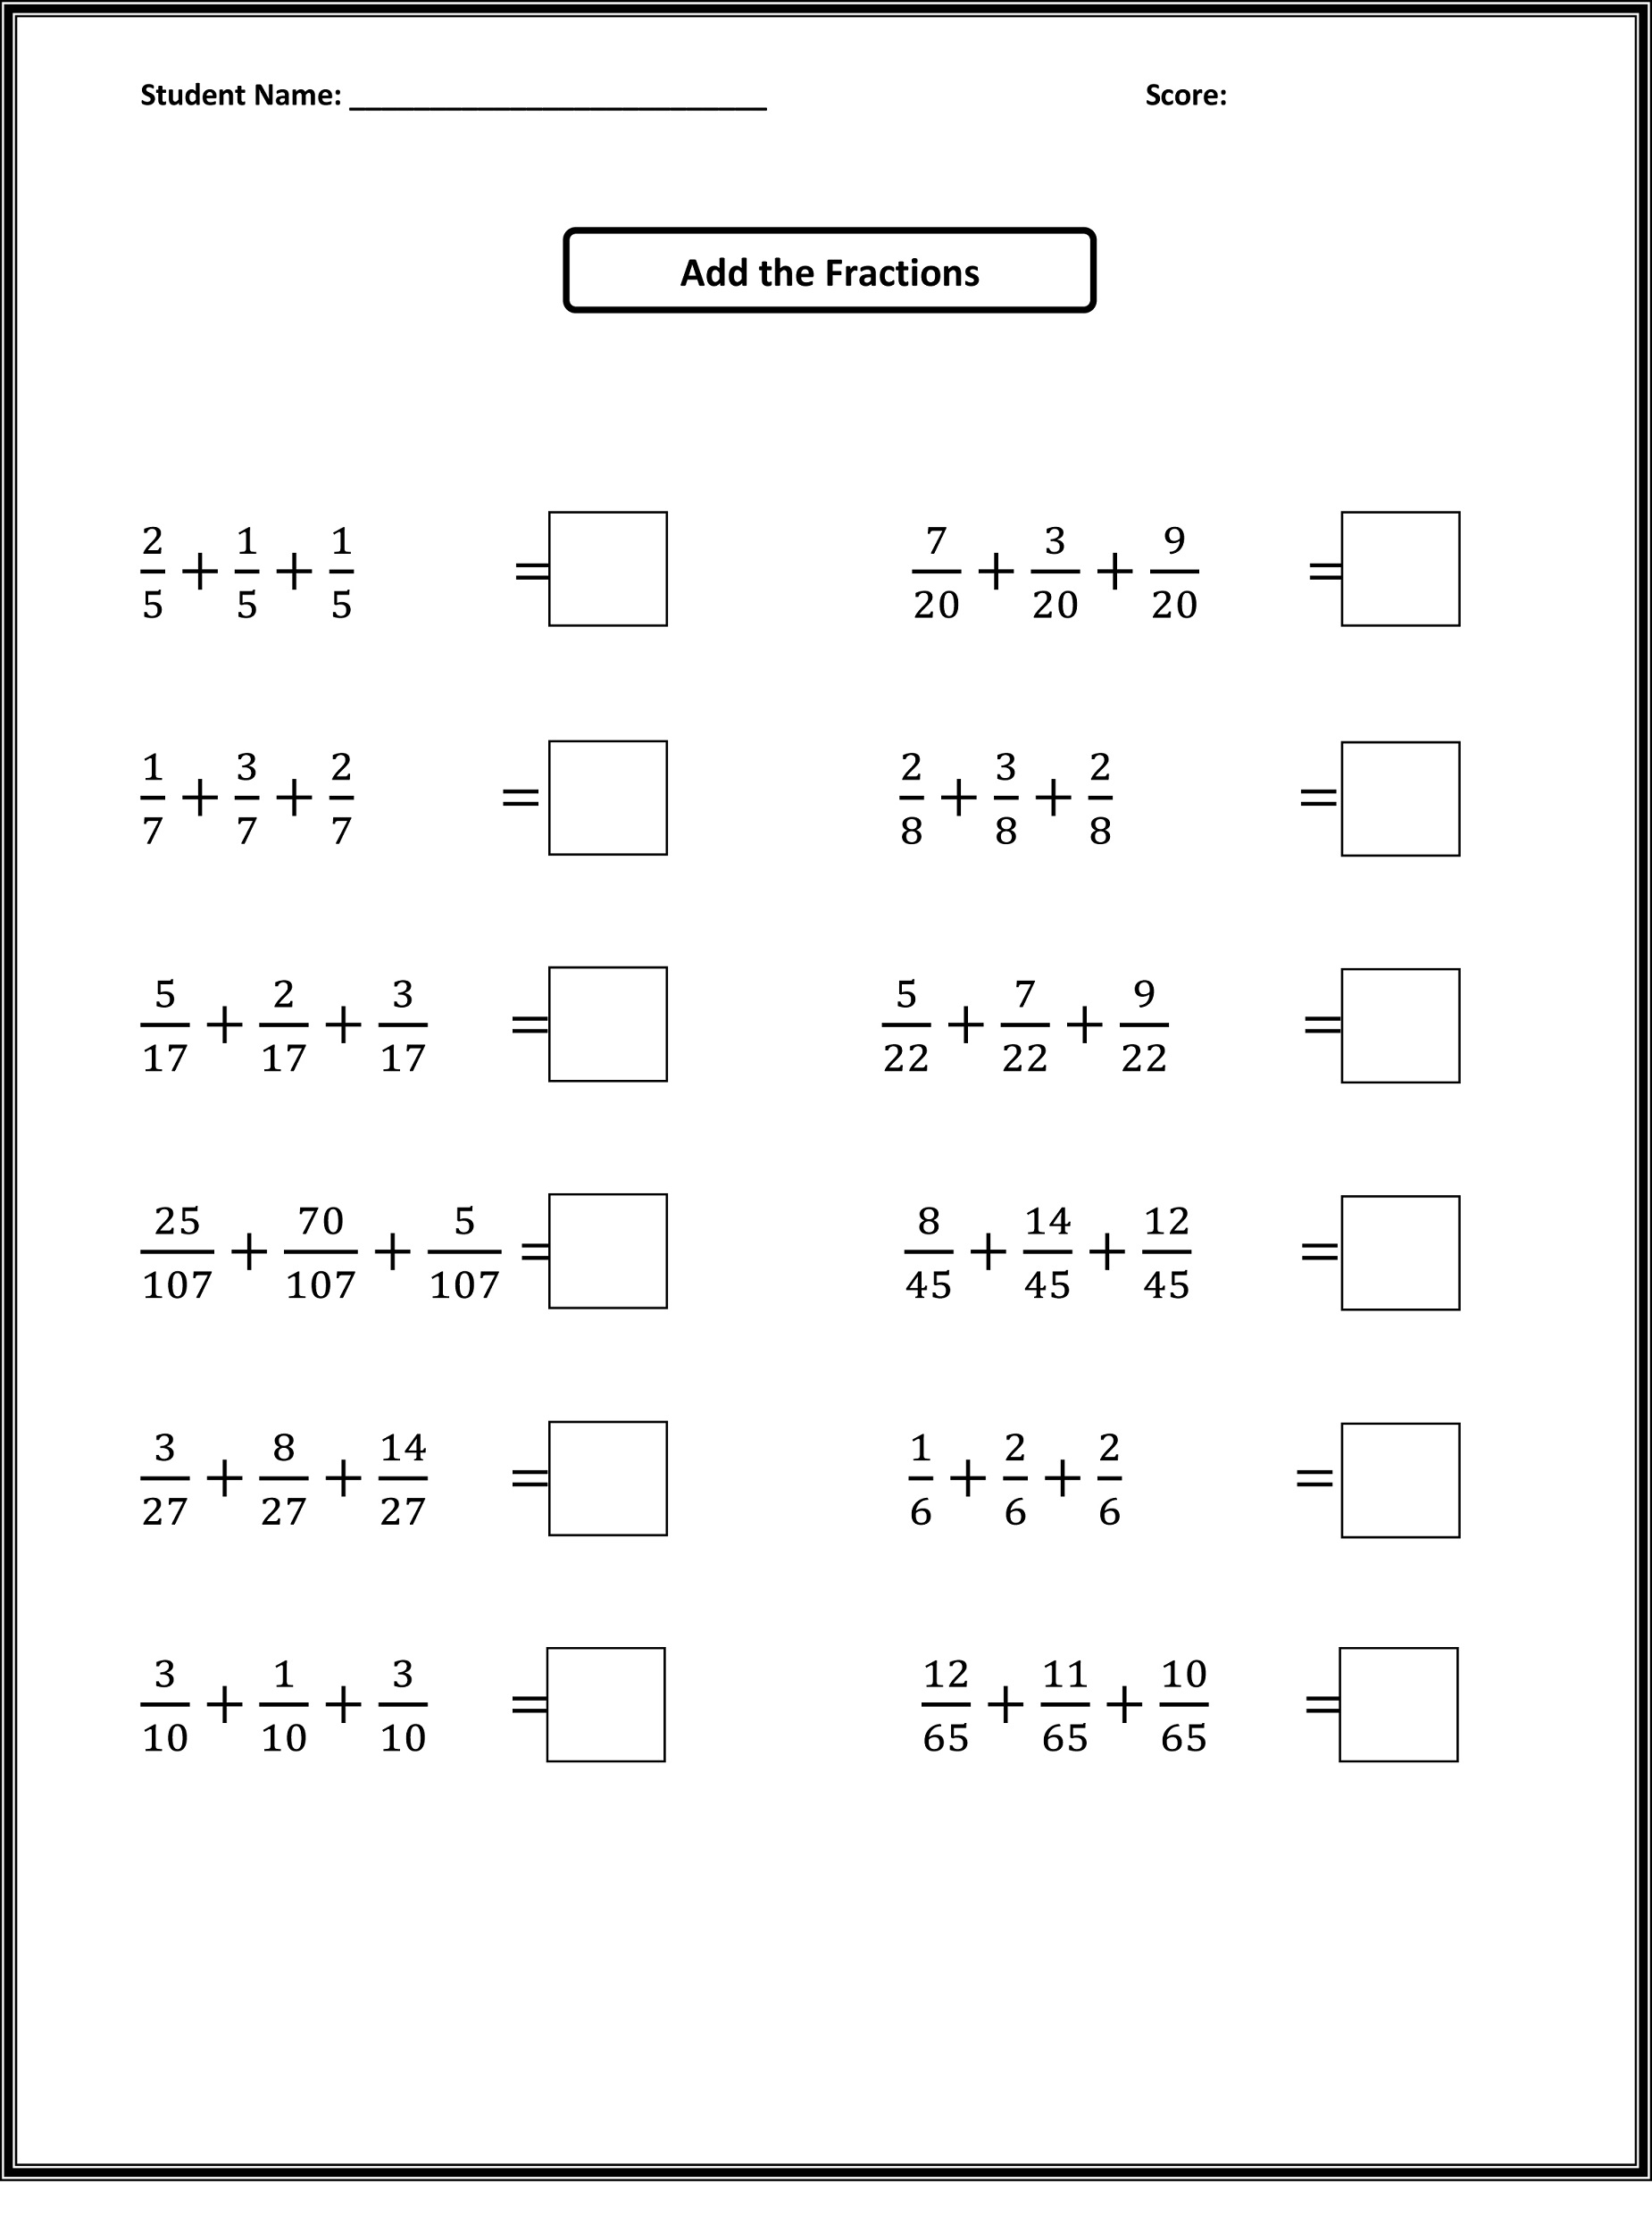 Free Printable Math Worksheet For 4th Grade